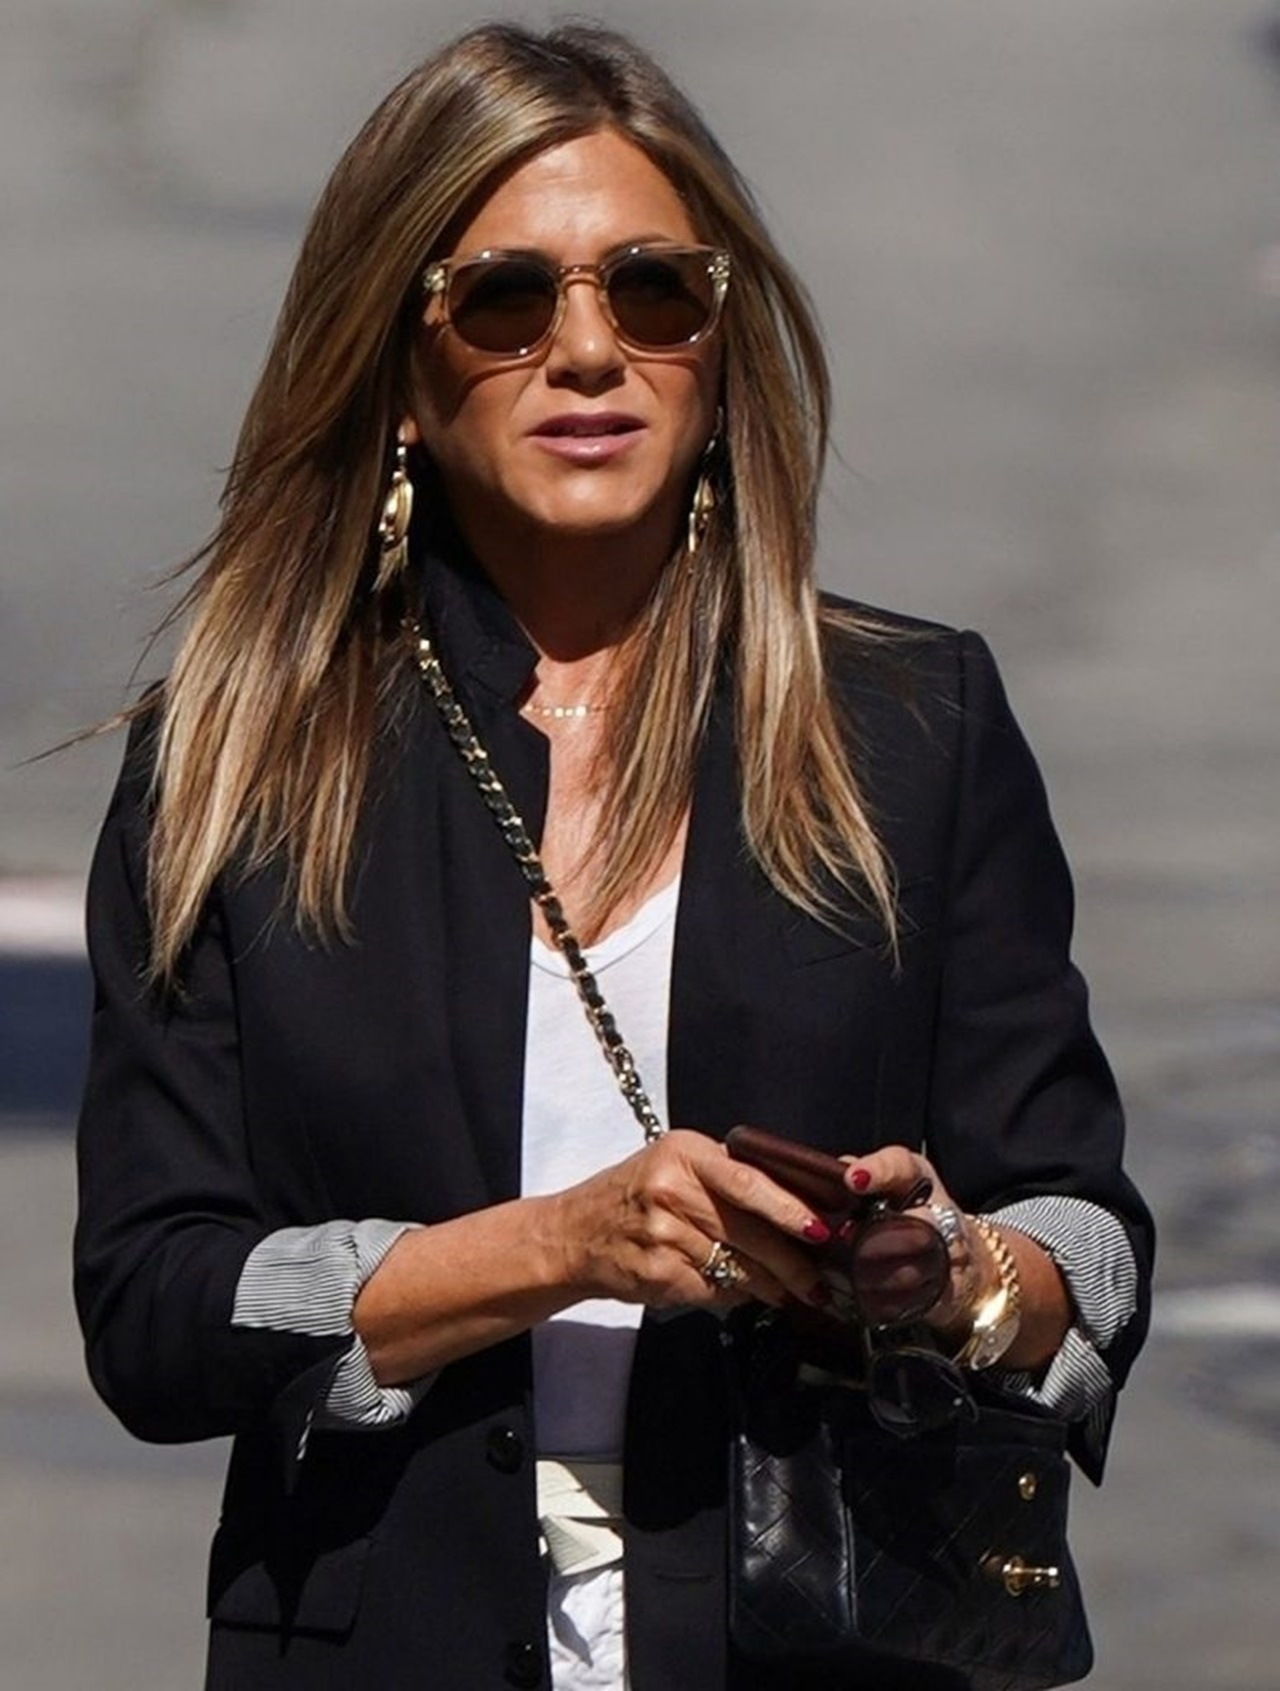 Jennifer Aniston makes an appearance on 'Jimmy Kimmel Live!' Jennifer Aniston